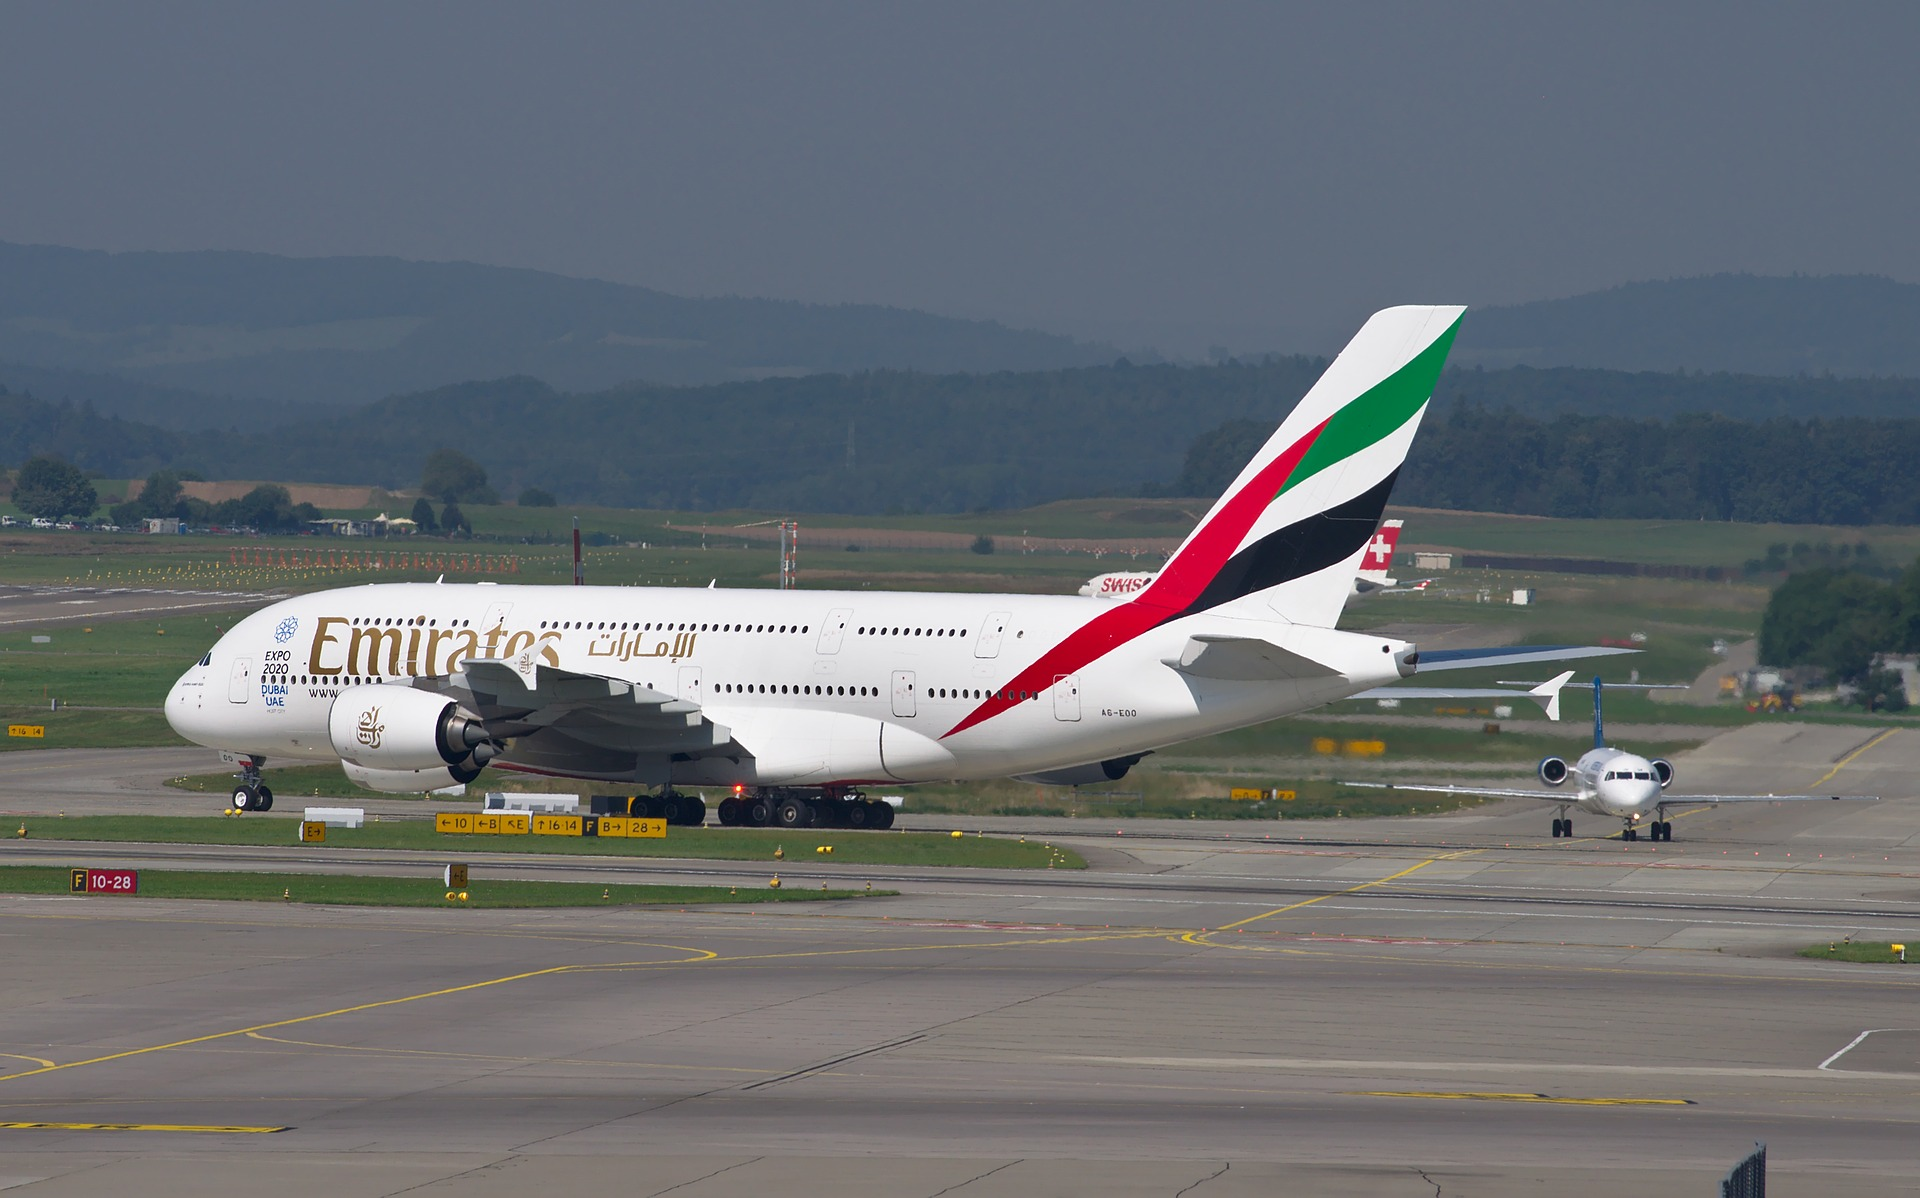 Emirates flights long view-flight parked in the airport